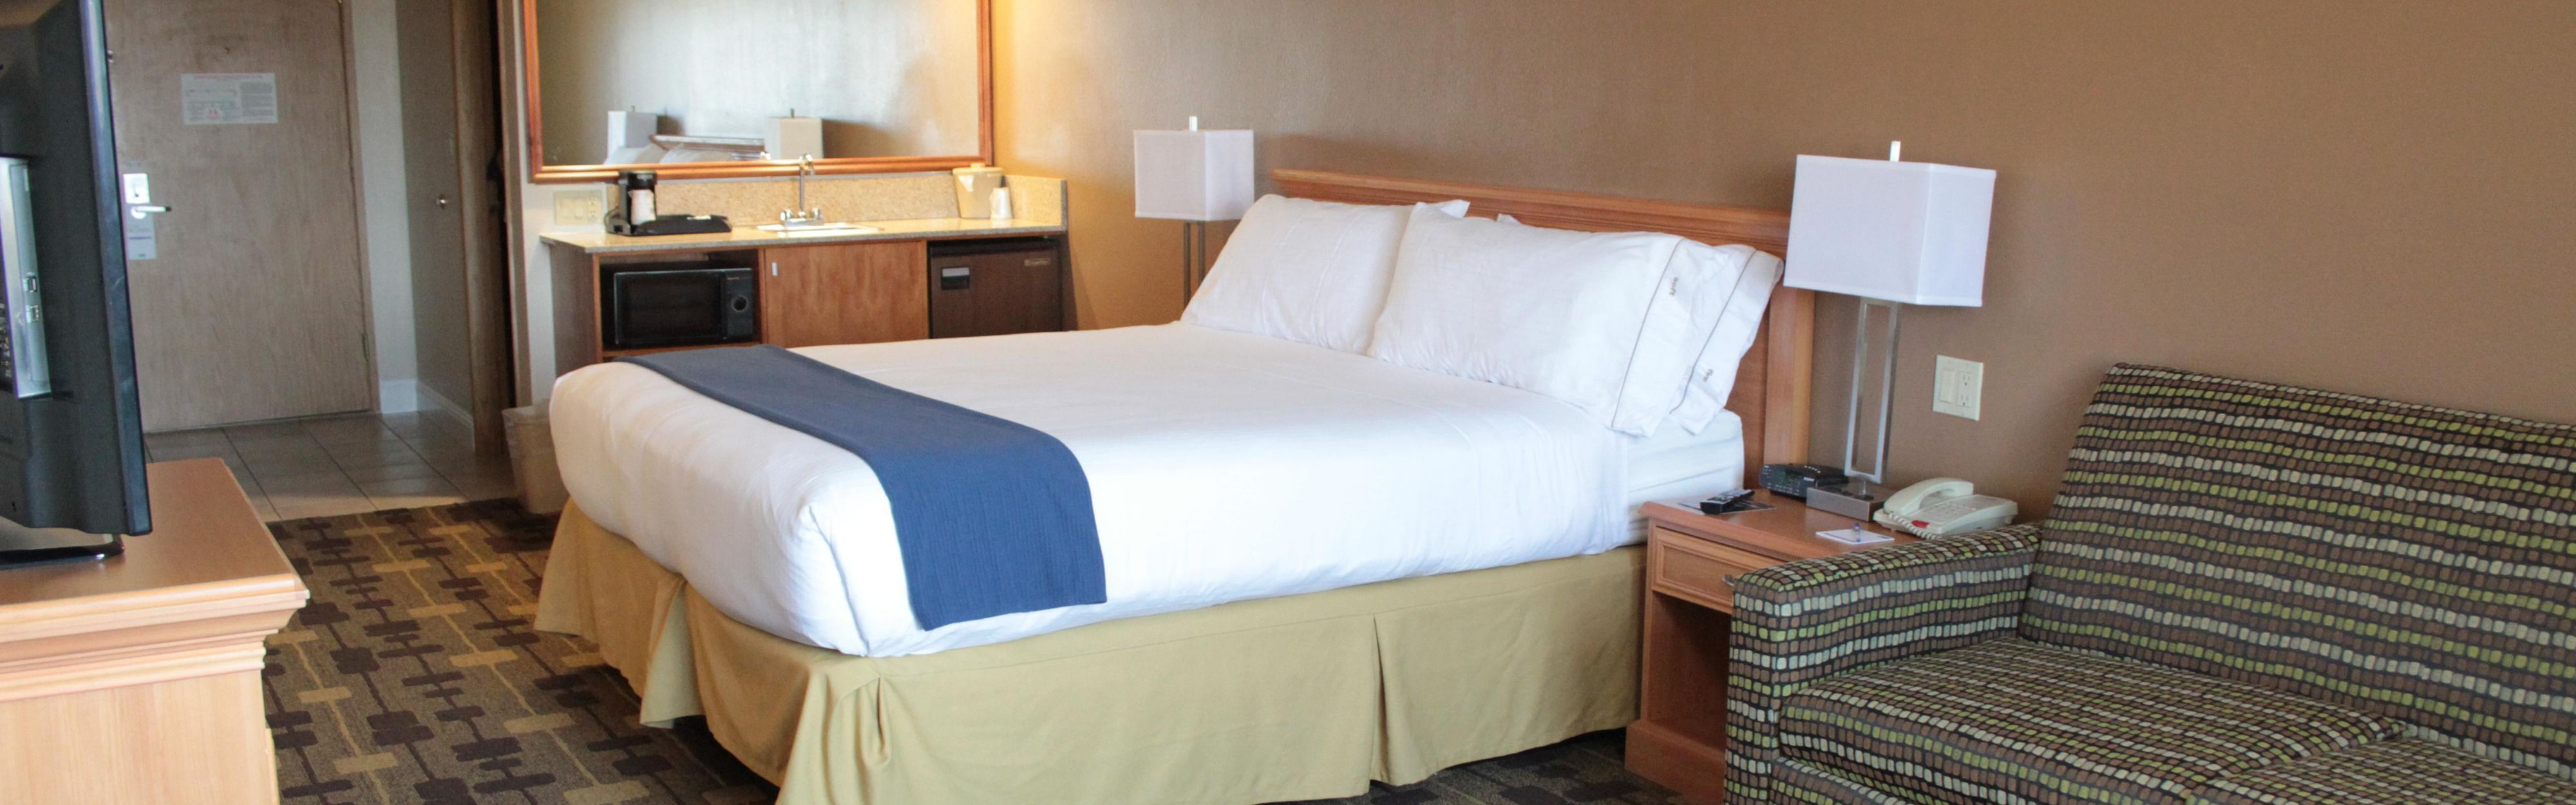 Holiday Inn Express & Suites Corning image 1